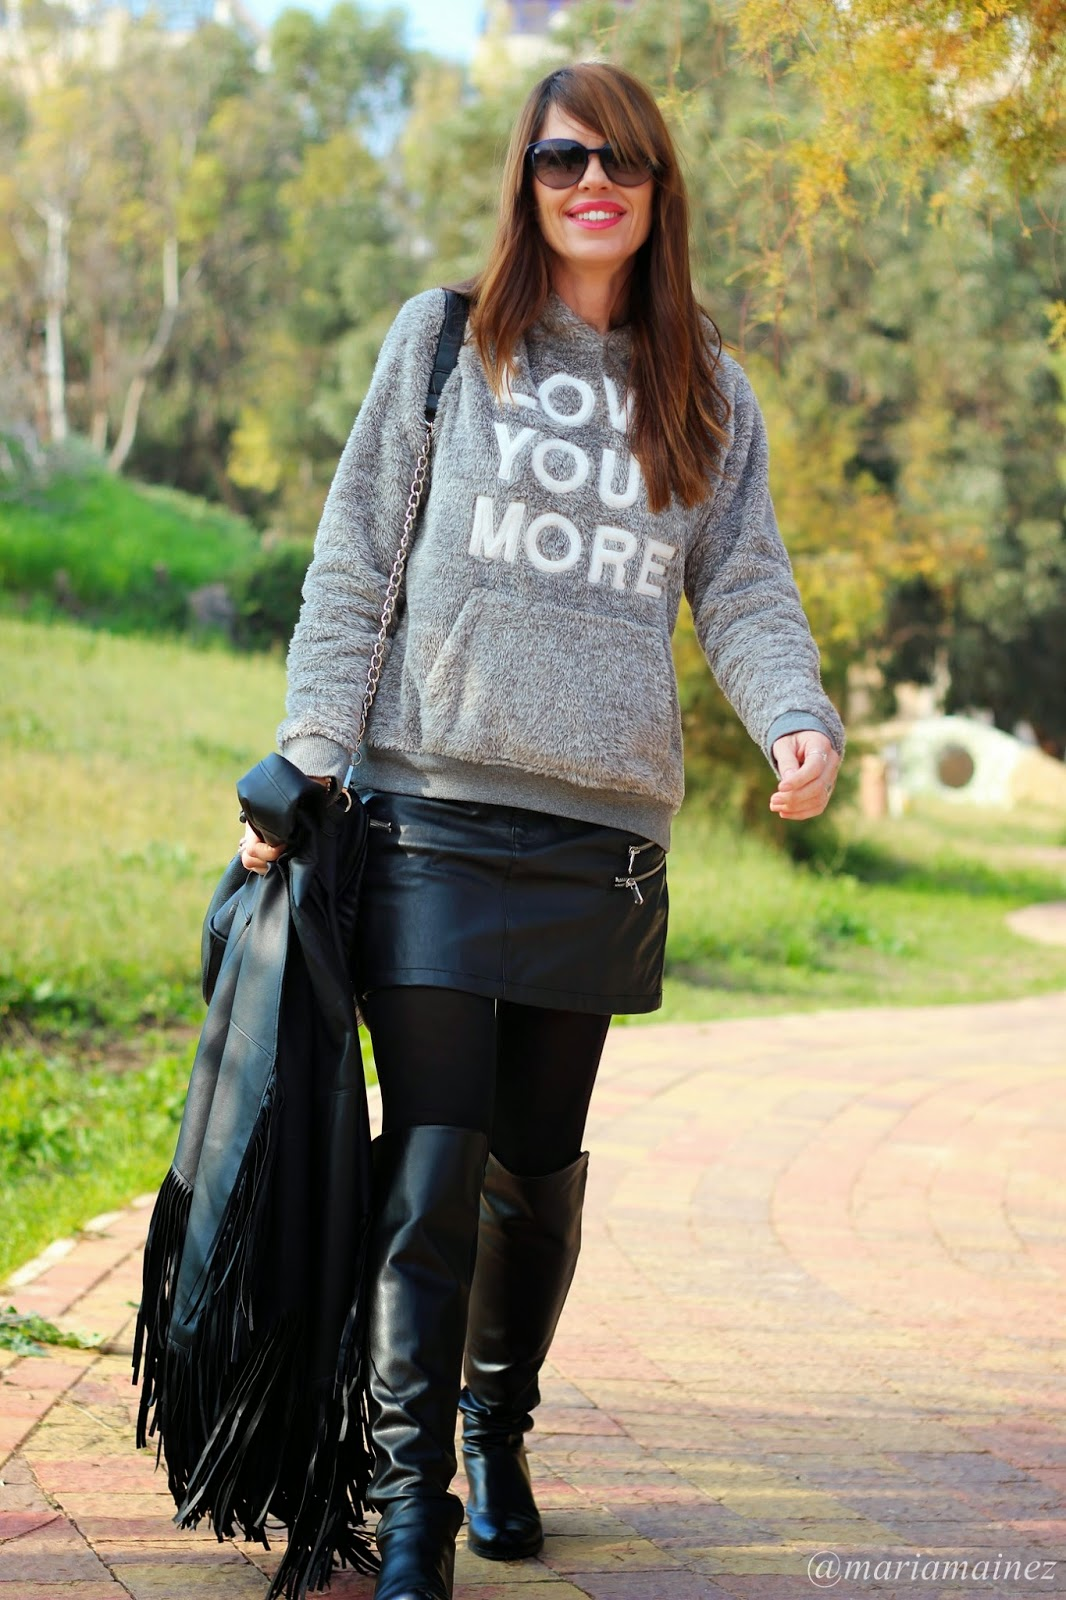 Capa Sheinside flecos - Outfit Invierno 2015 - Black and Grey - Boots UTK